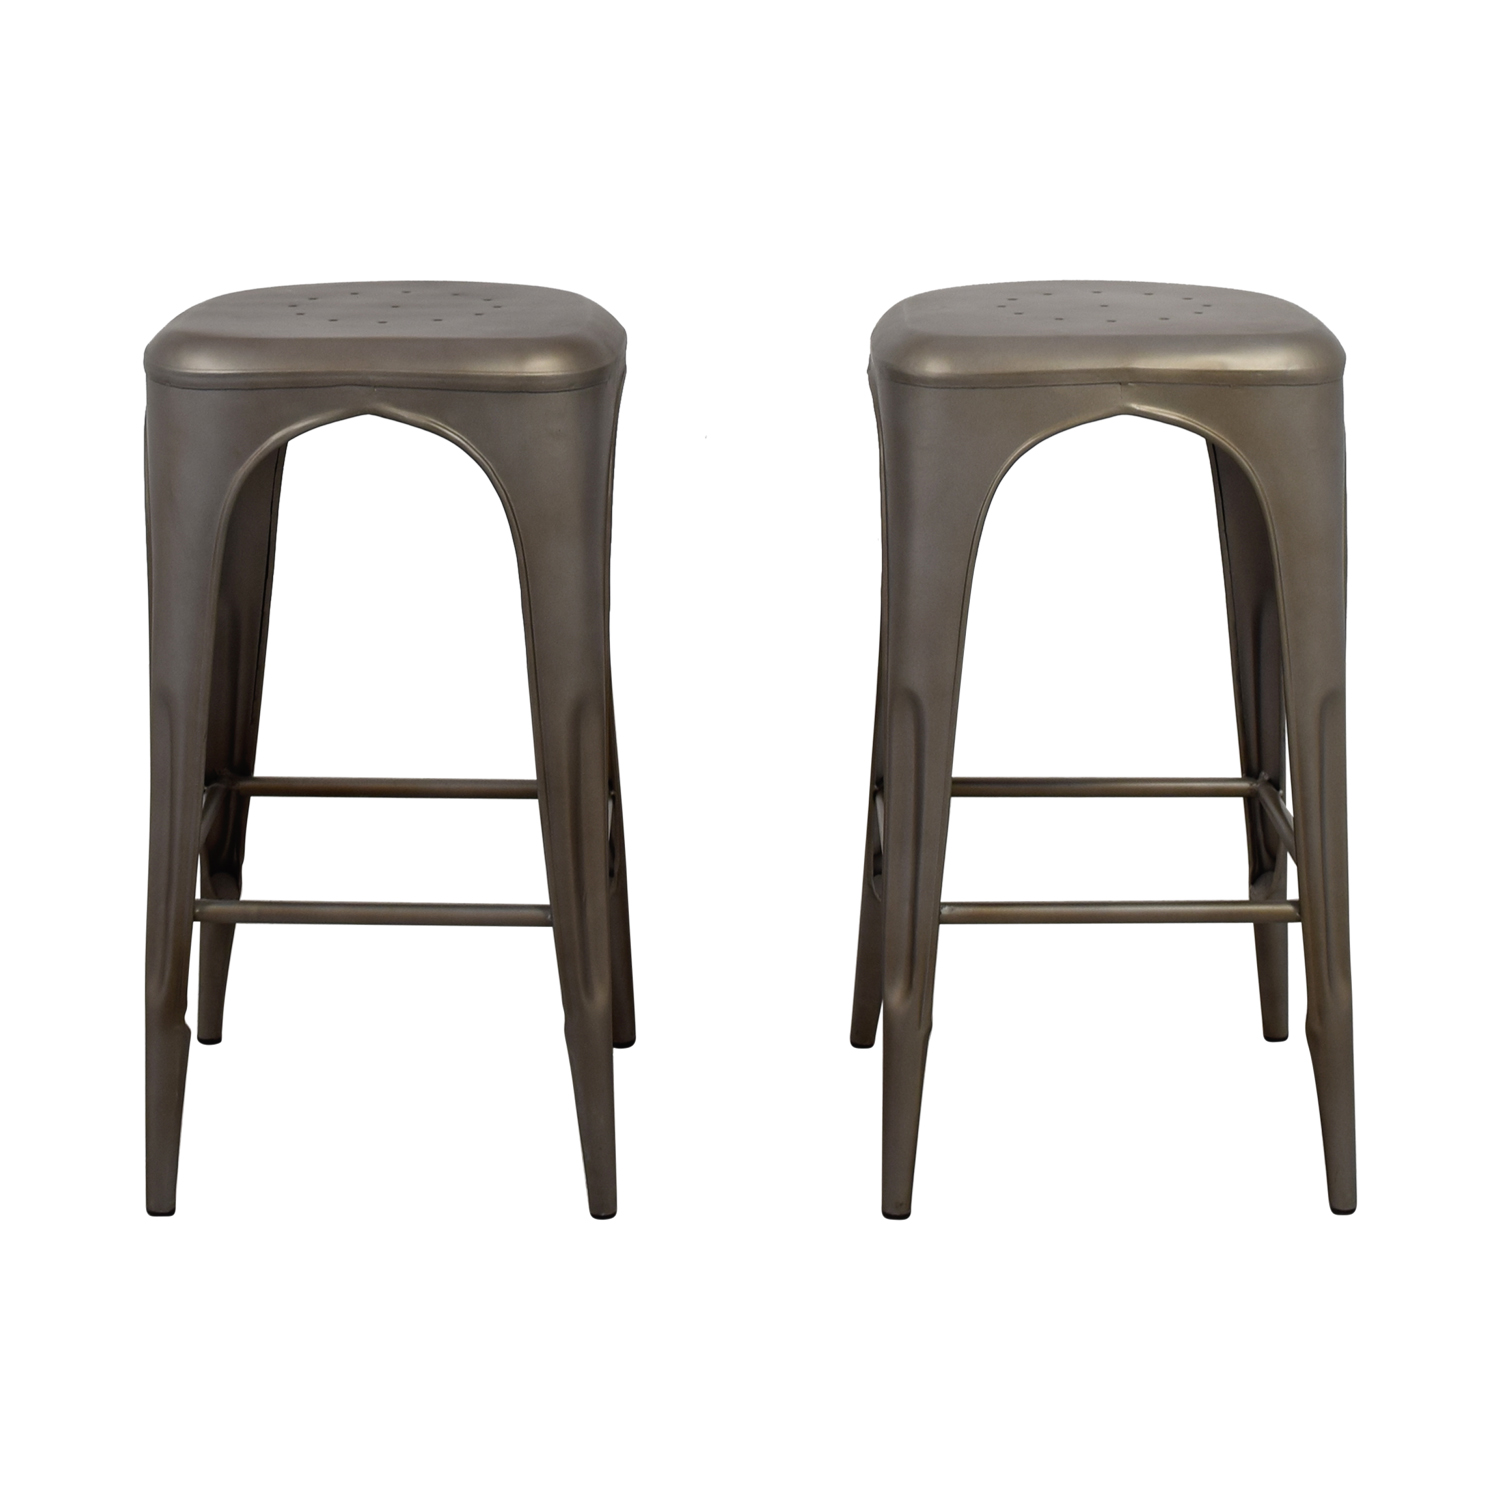 Restoration Hardware Remy backless stool (gunmetal gray) Restoration Hardware Remy Backless Barstools second hand